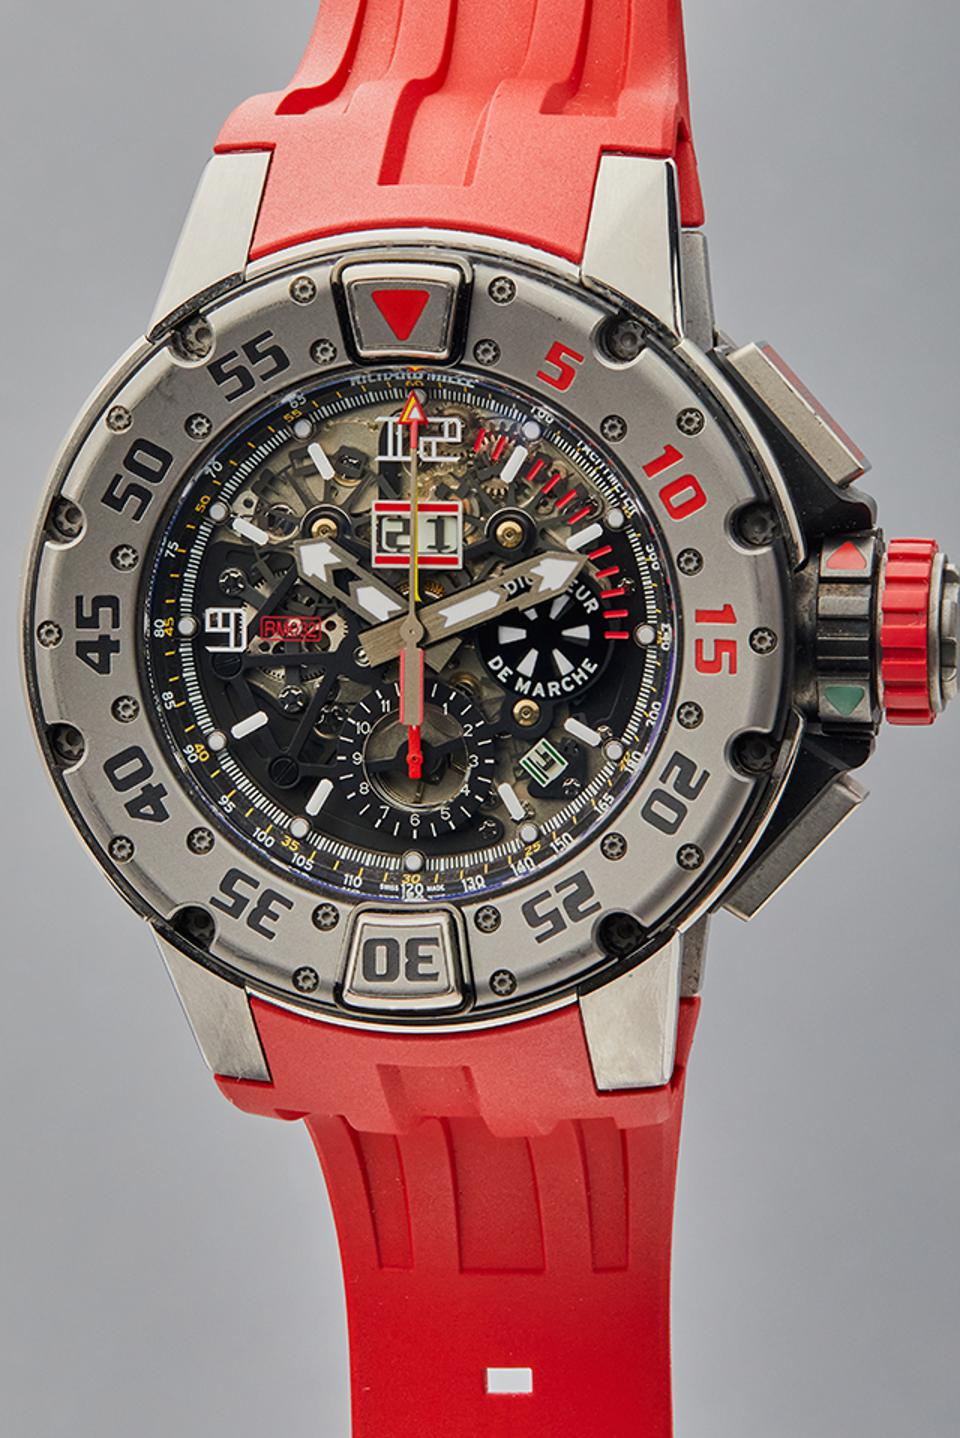 The Richard Mille RM 032 Sylvester Stallone wore in the film The Expendables III.